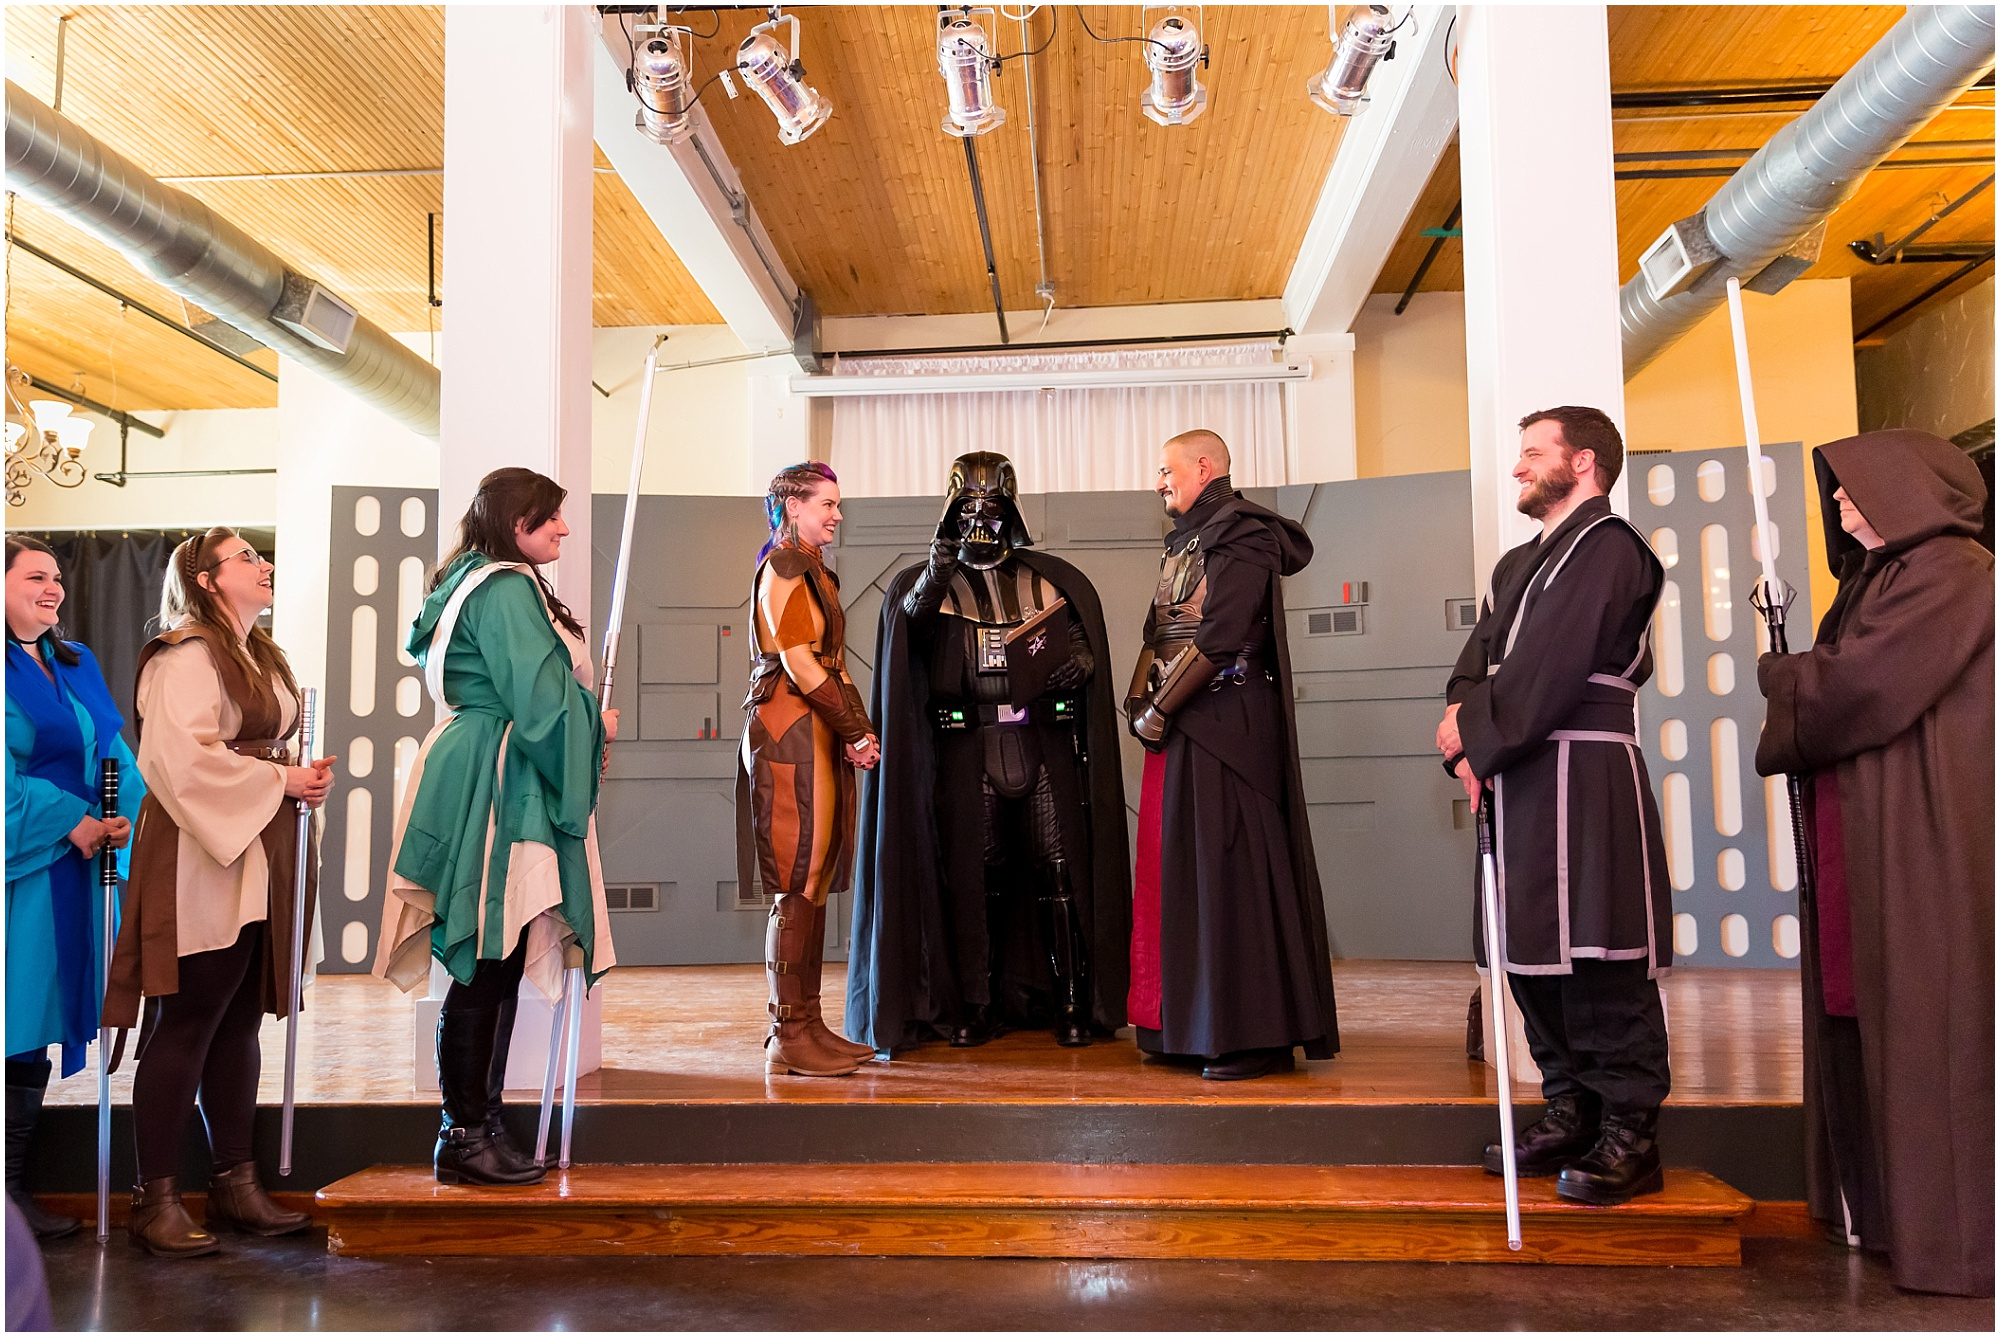 Star Wars wedding ceremony on May the 4th at The Palladium in Waco, Texas - Jason & Melaina Photography